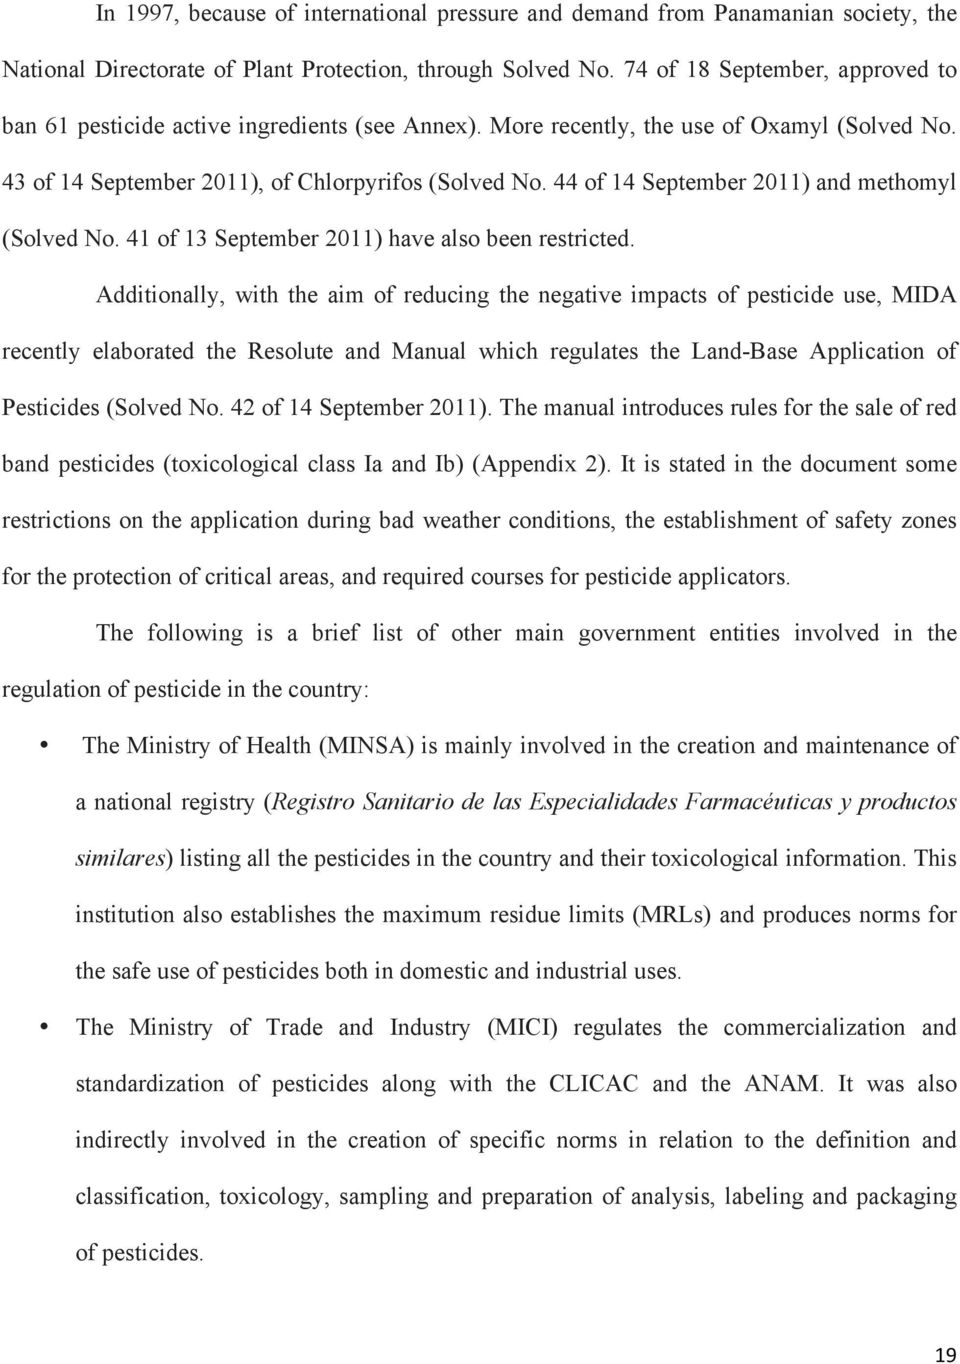 44 of 14 September 2011) and methomyl (Solved No. 41 of 13 September 2011) have also been restricted.